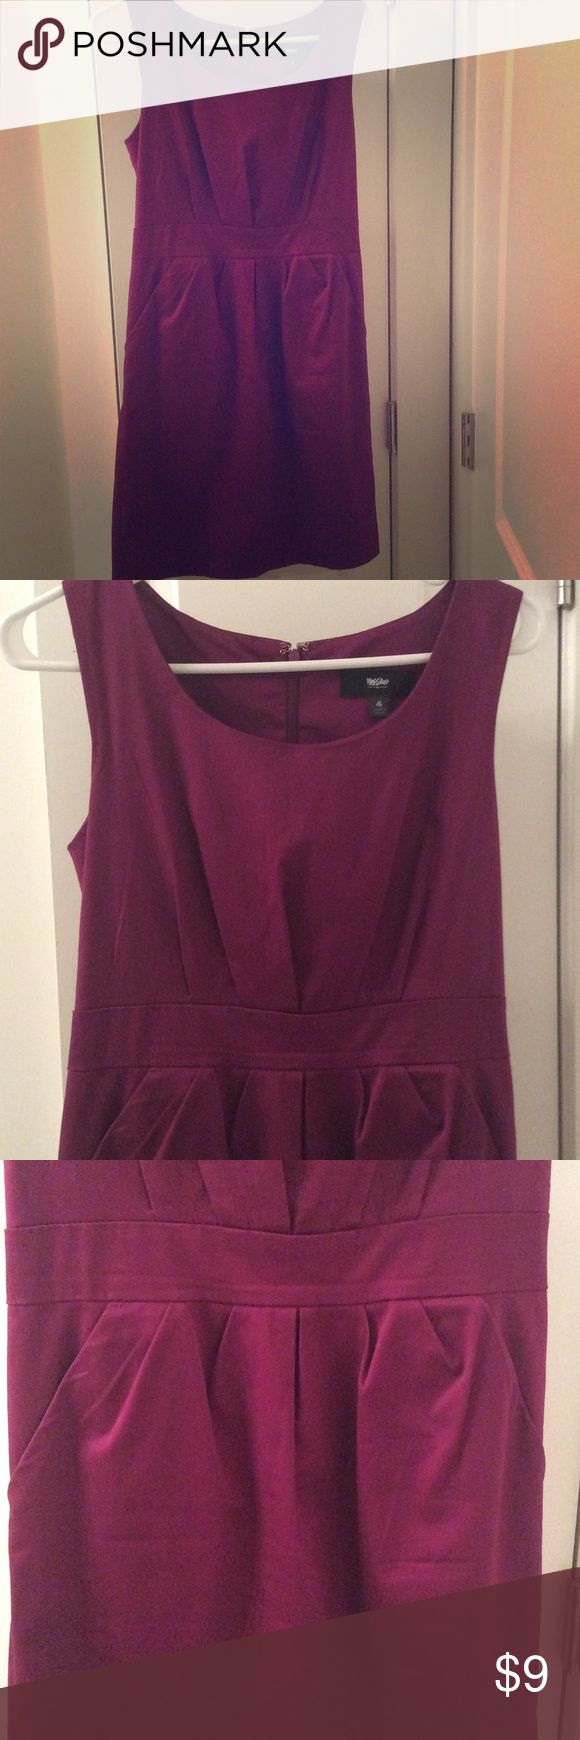 Purple Work Dress w- Pockets! Size 4! Purple dress with scooped neck, band at waist, and best of all, pockets! Size 4. This was bought as an in between regular, and maternity clothes work dress, since the empire type waist was forgiving to accommodated a growing baby bump. Excellent condition! Mossimo Supply Co Dresses